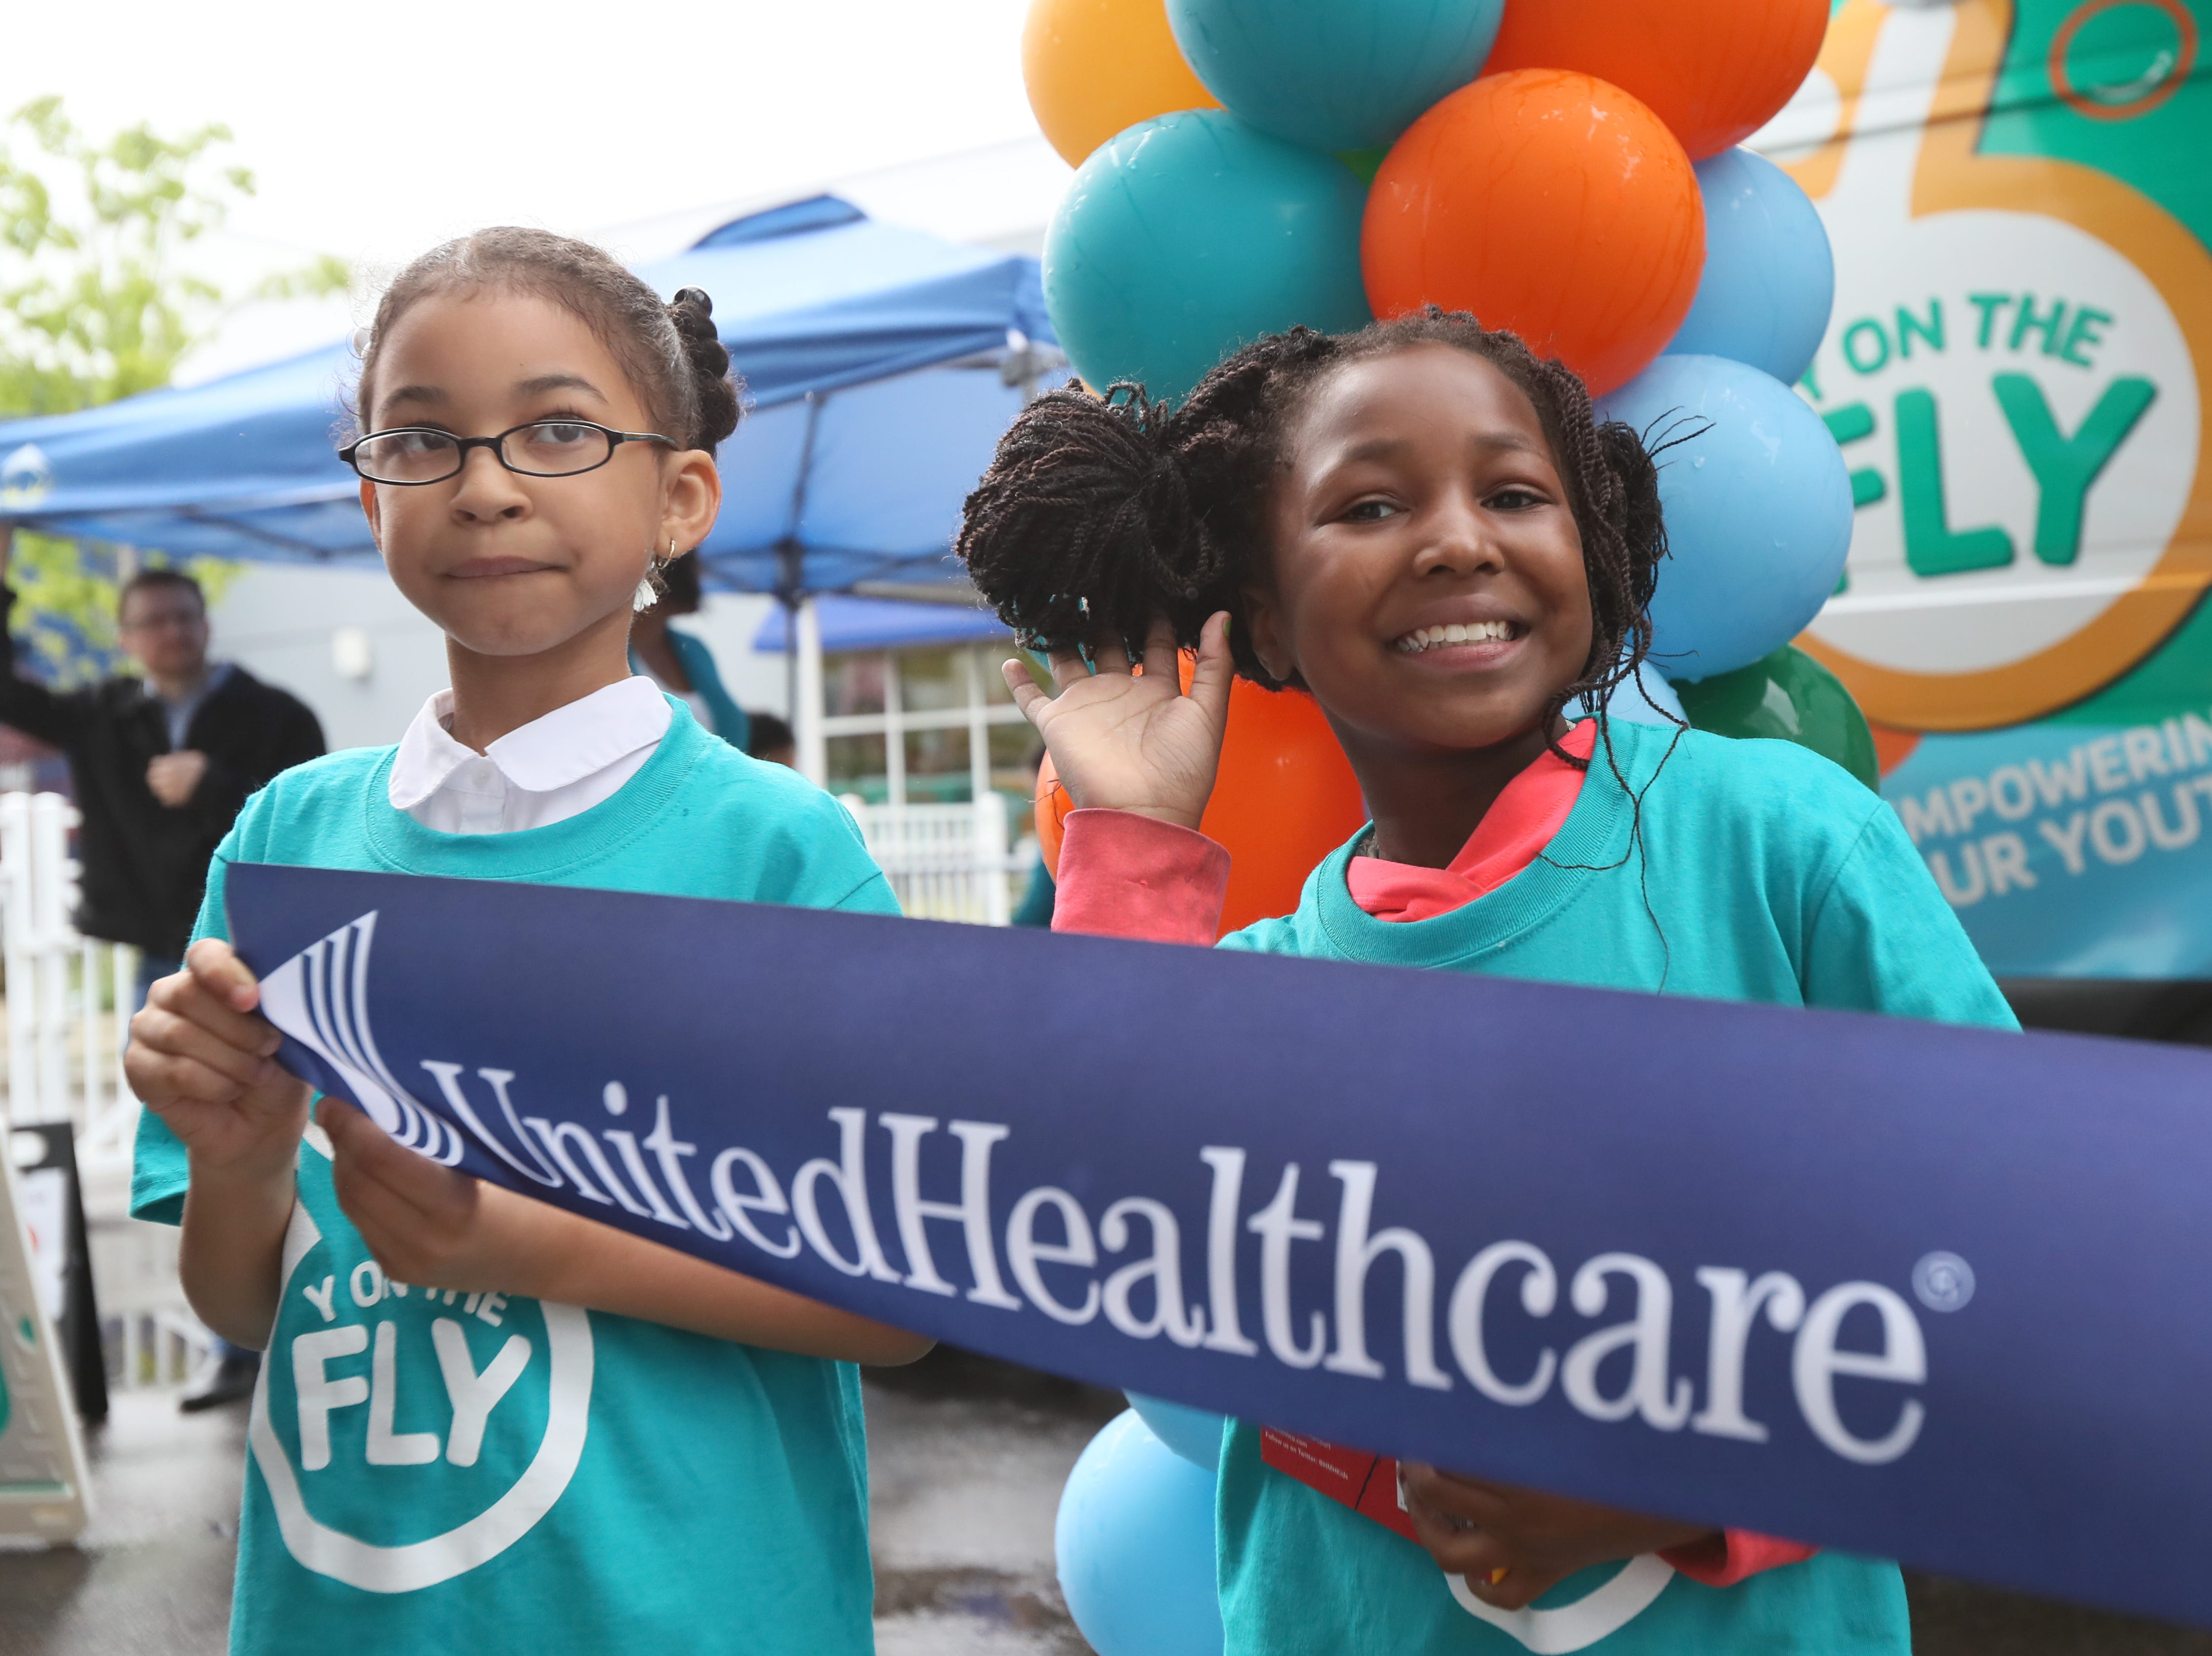 Taylor Dent, 7, left, and Zade White, 9, prepare for the official ribbon cutting as the YMCA announces their 'Y on the Fly' program at the Graceland soundstage in Whitehaven on Thursday, April 18, 2019. The Y-without-walls concept comes with two vans that will deliver programs and services to young people who don't live near a YMCA.